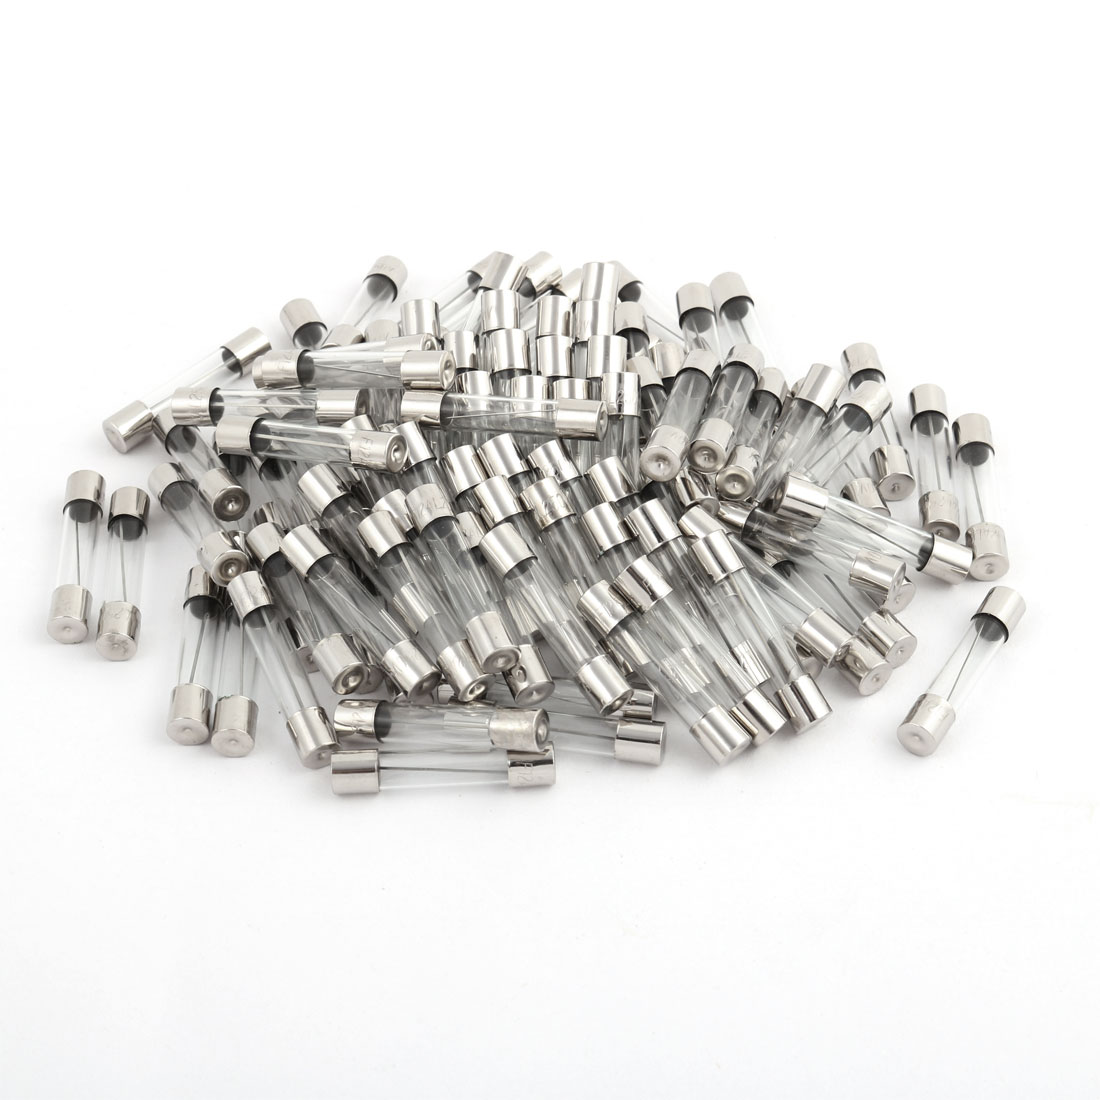 100 Pcs 250V 12A 6mm x 30mm Glass Tube Fuse Silver Tone for Electric Safety